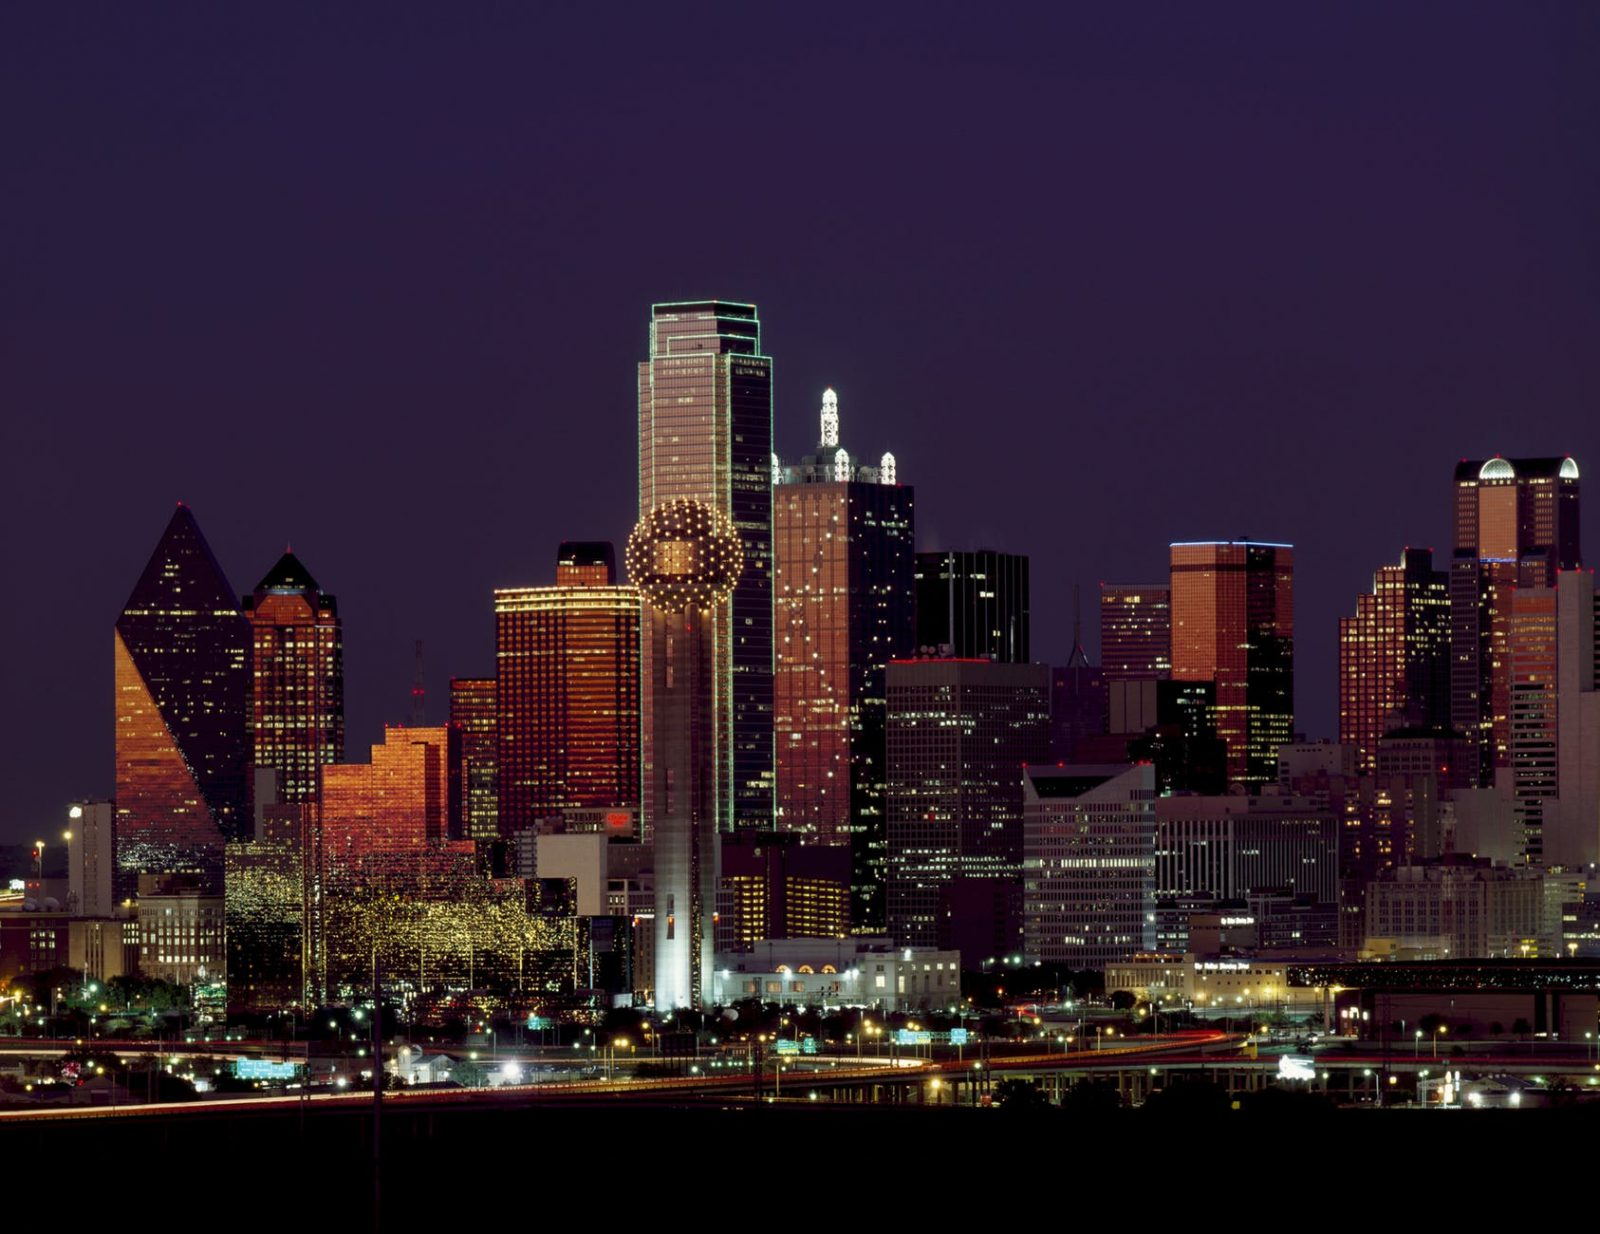 Flight Deal Round Trip From Chicago Area to Dallas Area #chicago #dallas #1week